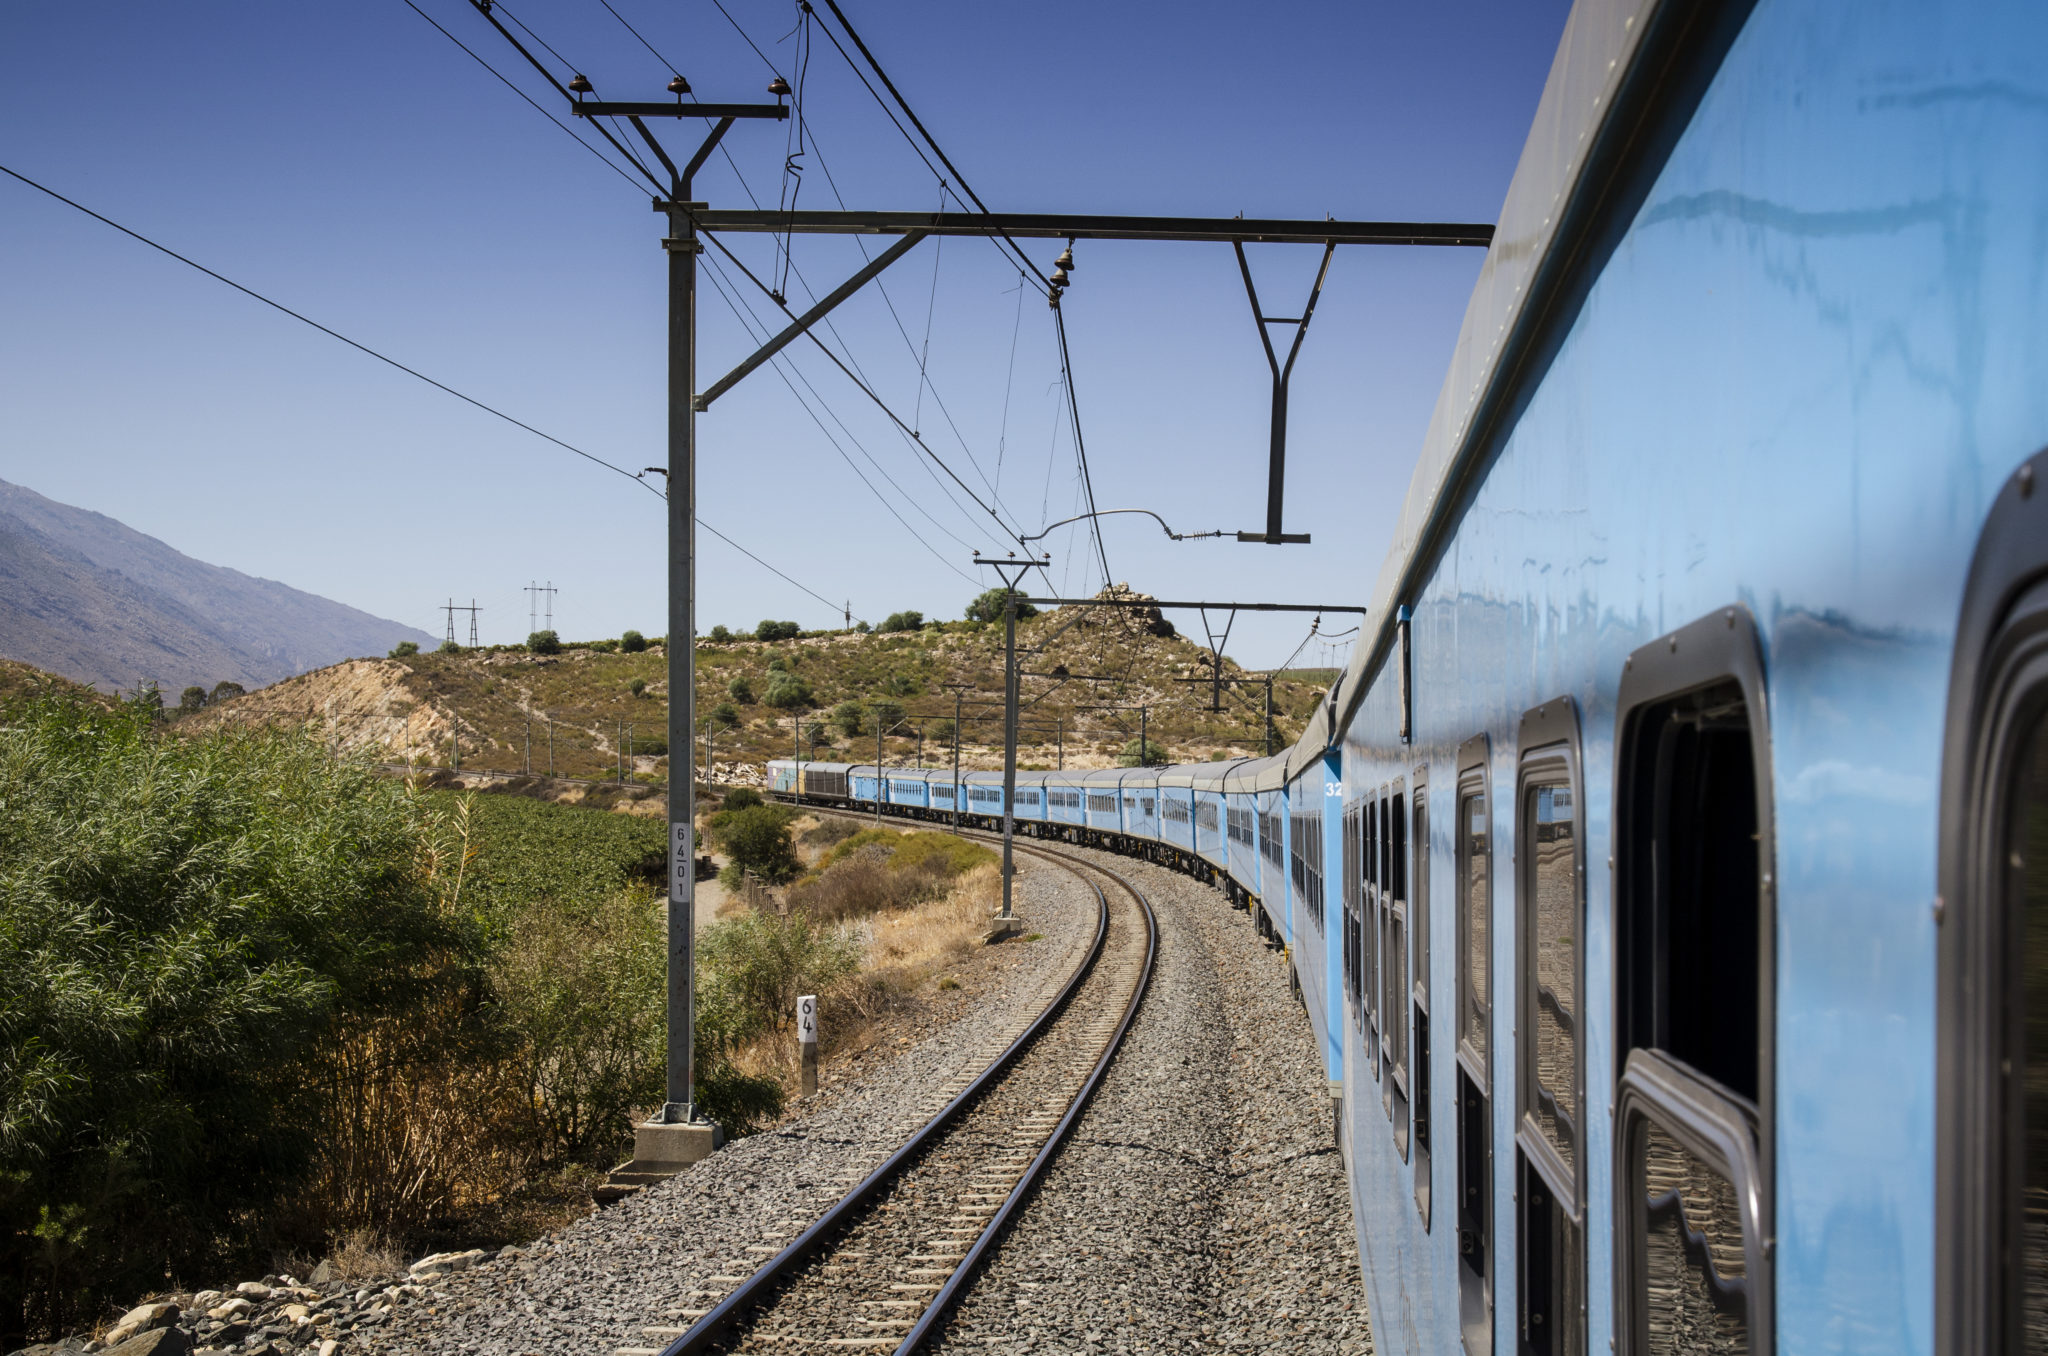 Things-to-do-in-South-Africa-Blue-Train-Johannesburg-Kapstadt